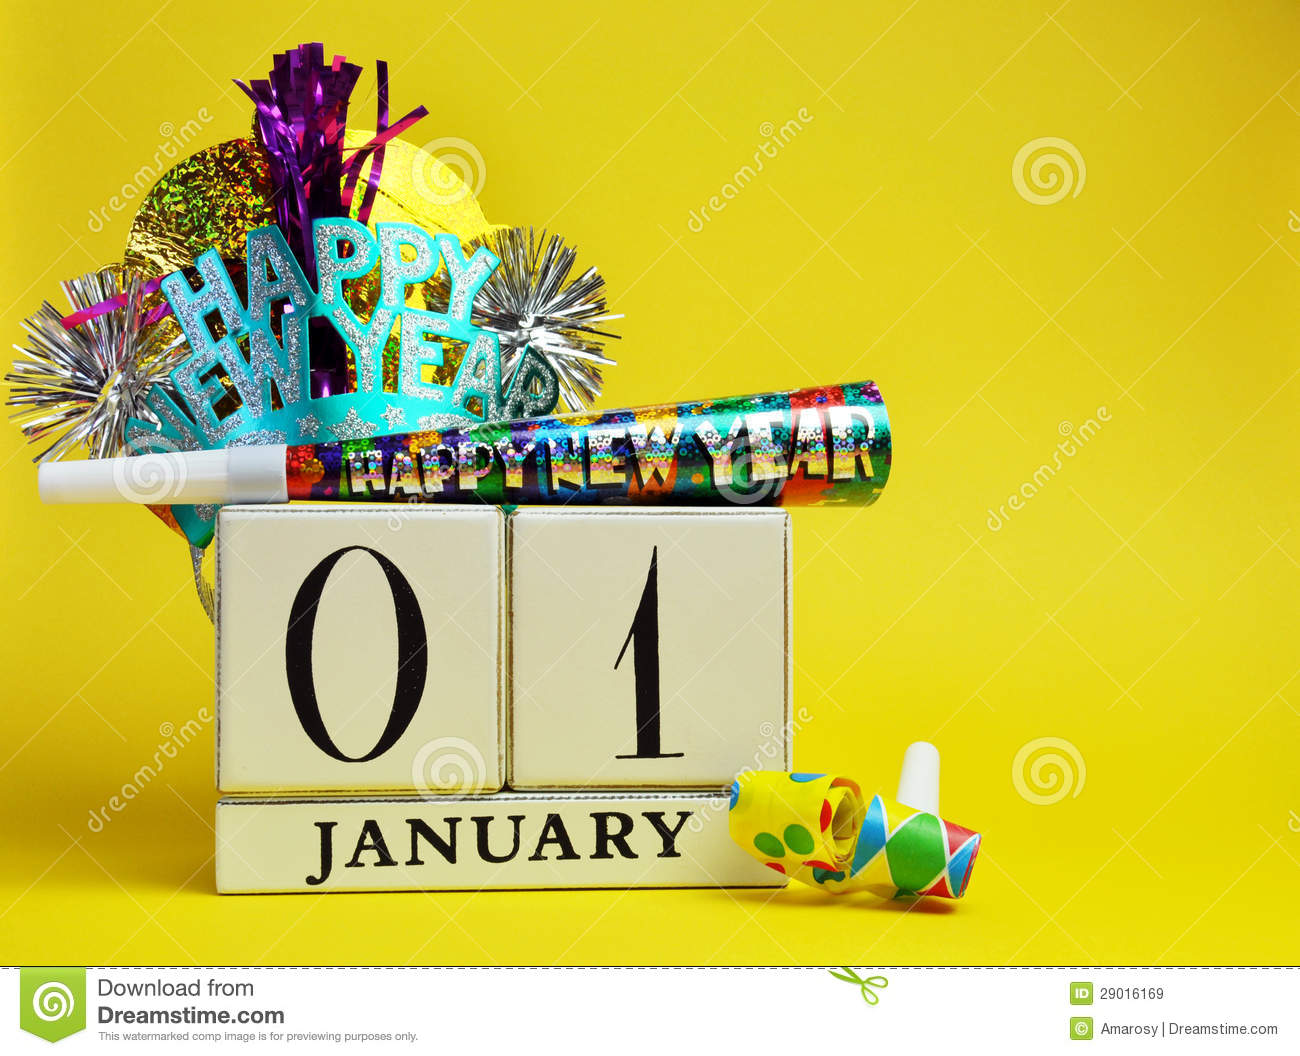 10 Year Calendar Free Year 2018 Calendar Time And Date Yellow Theme Save The Date Calendar For New Year January